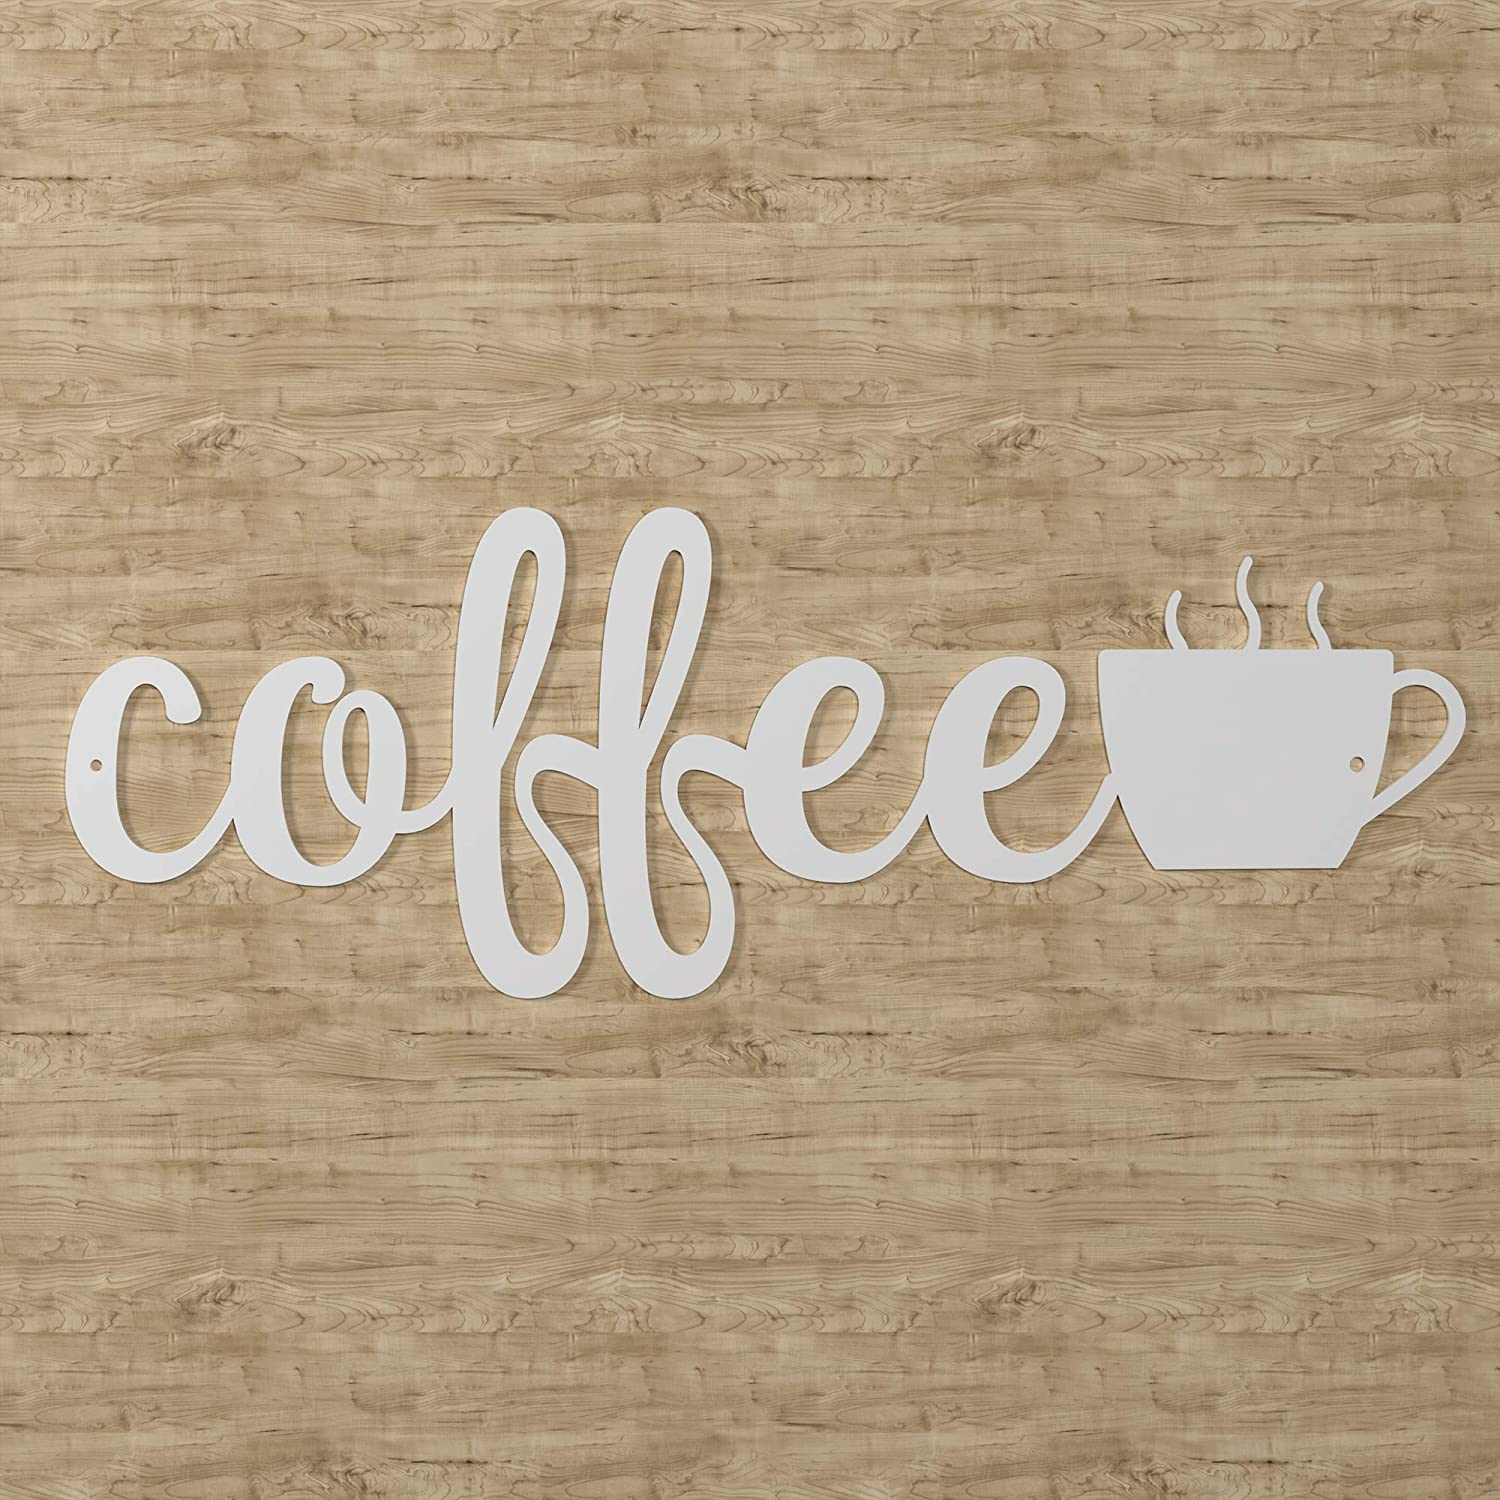 "American Maker 'Coffee' Steel Wall Art Home Decor, Laser Cut Metal Sign Decoration, Hanging Word Plaque for Family Room or Kitchen, Made in the USA, White, 17"" x 6"""